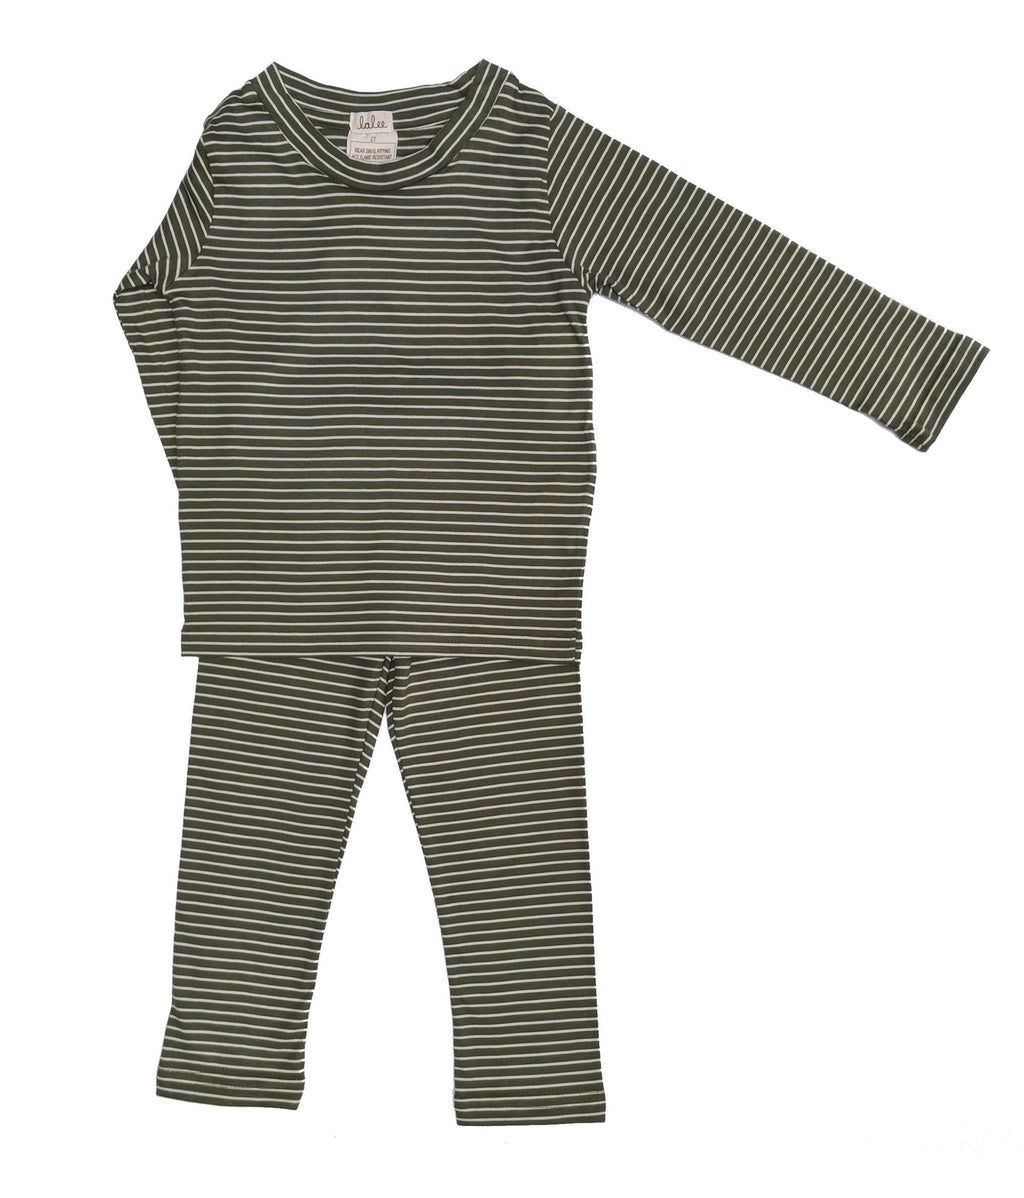 Organic Cotton Pajamas Set - Green Stripe